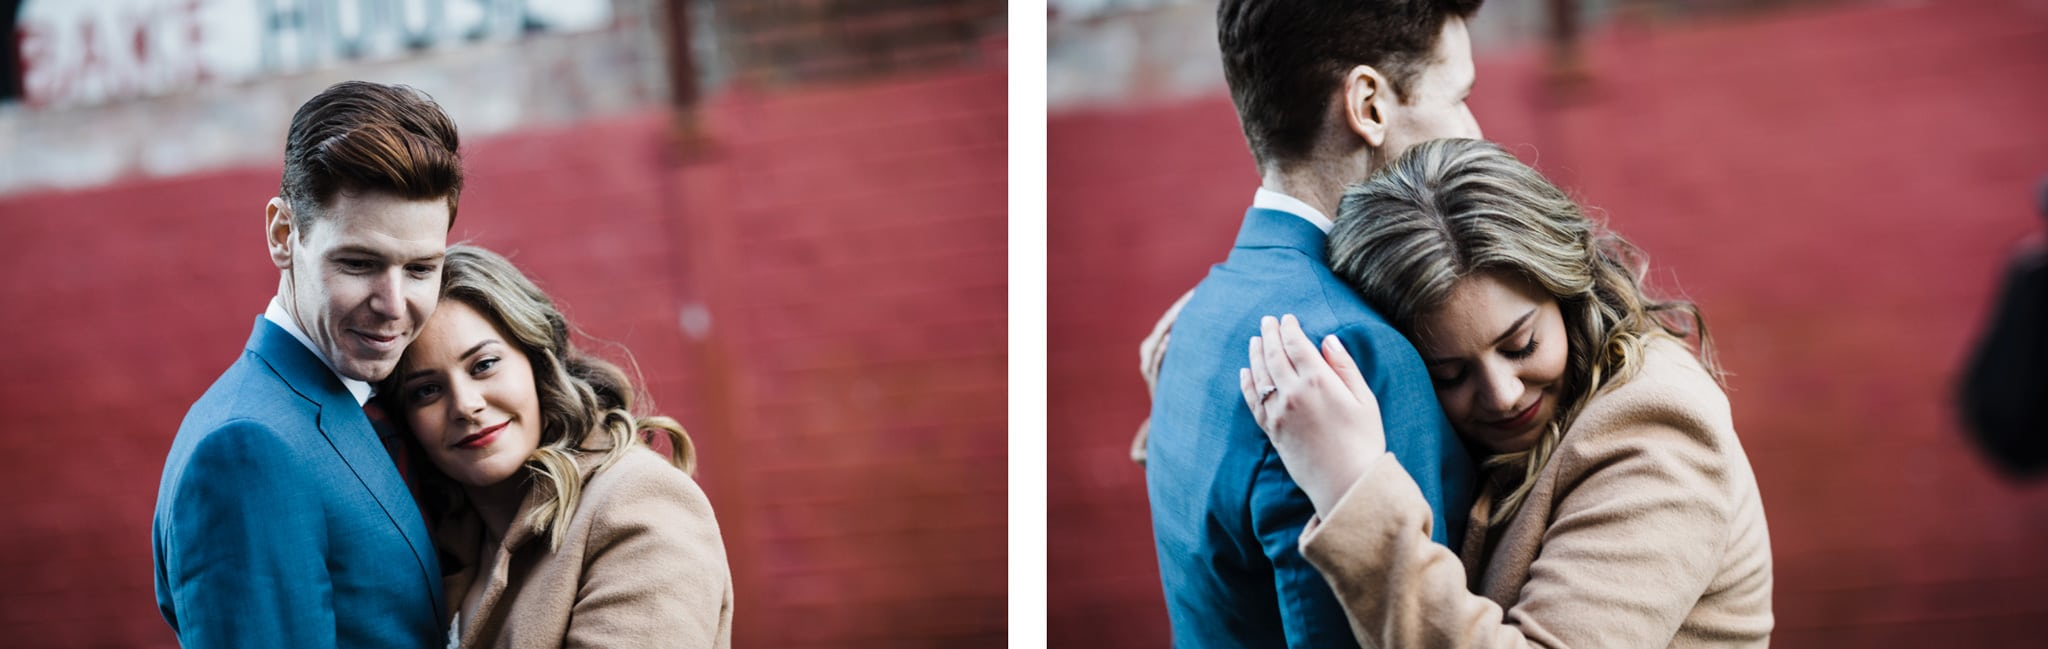 pre wedding photos in melbourne - candid shots